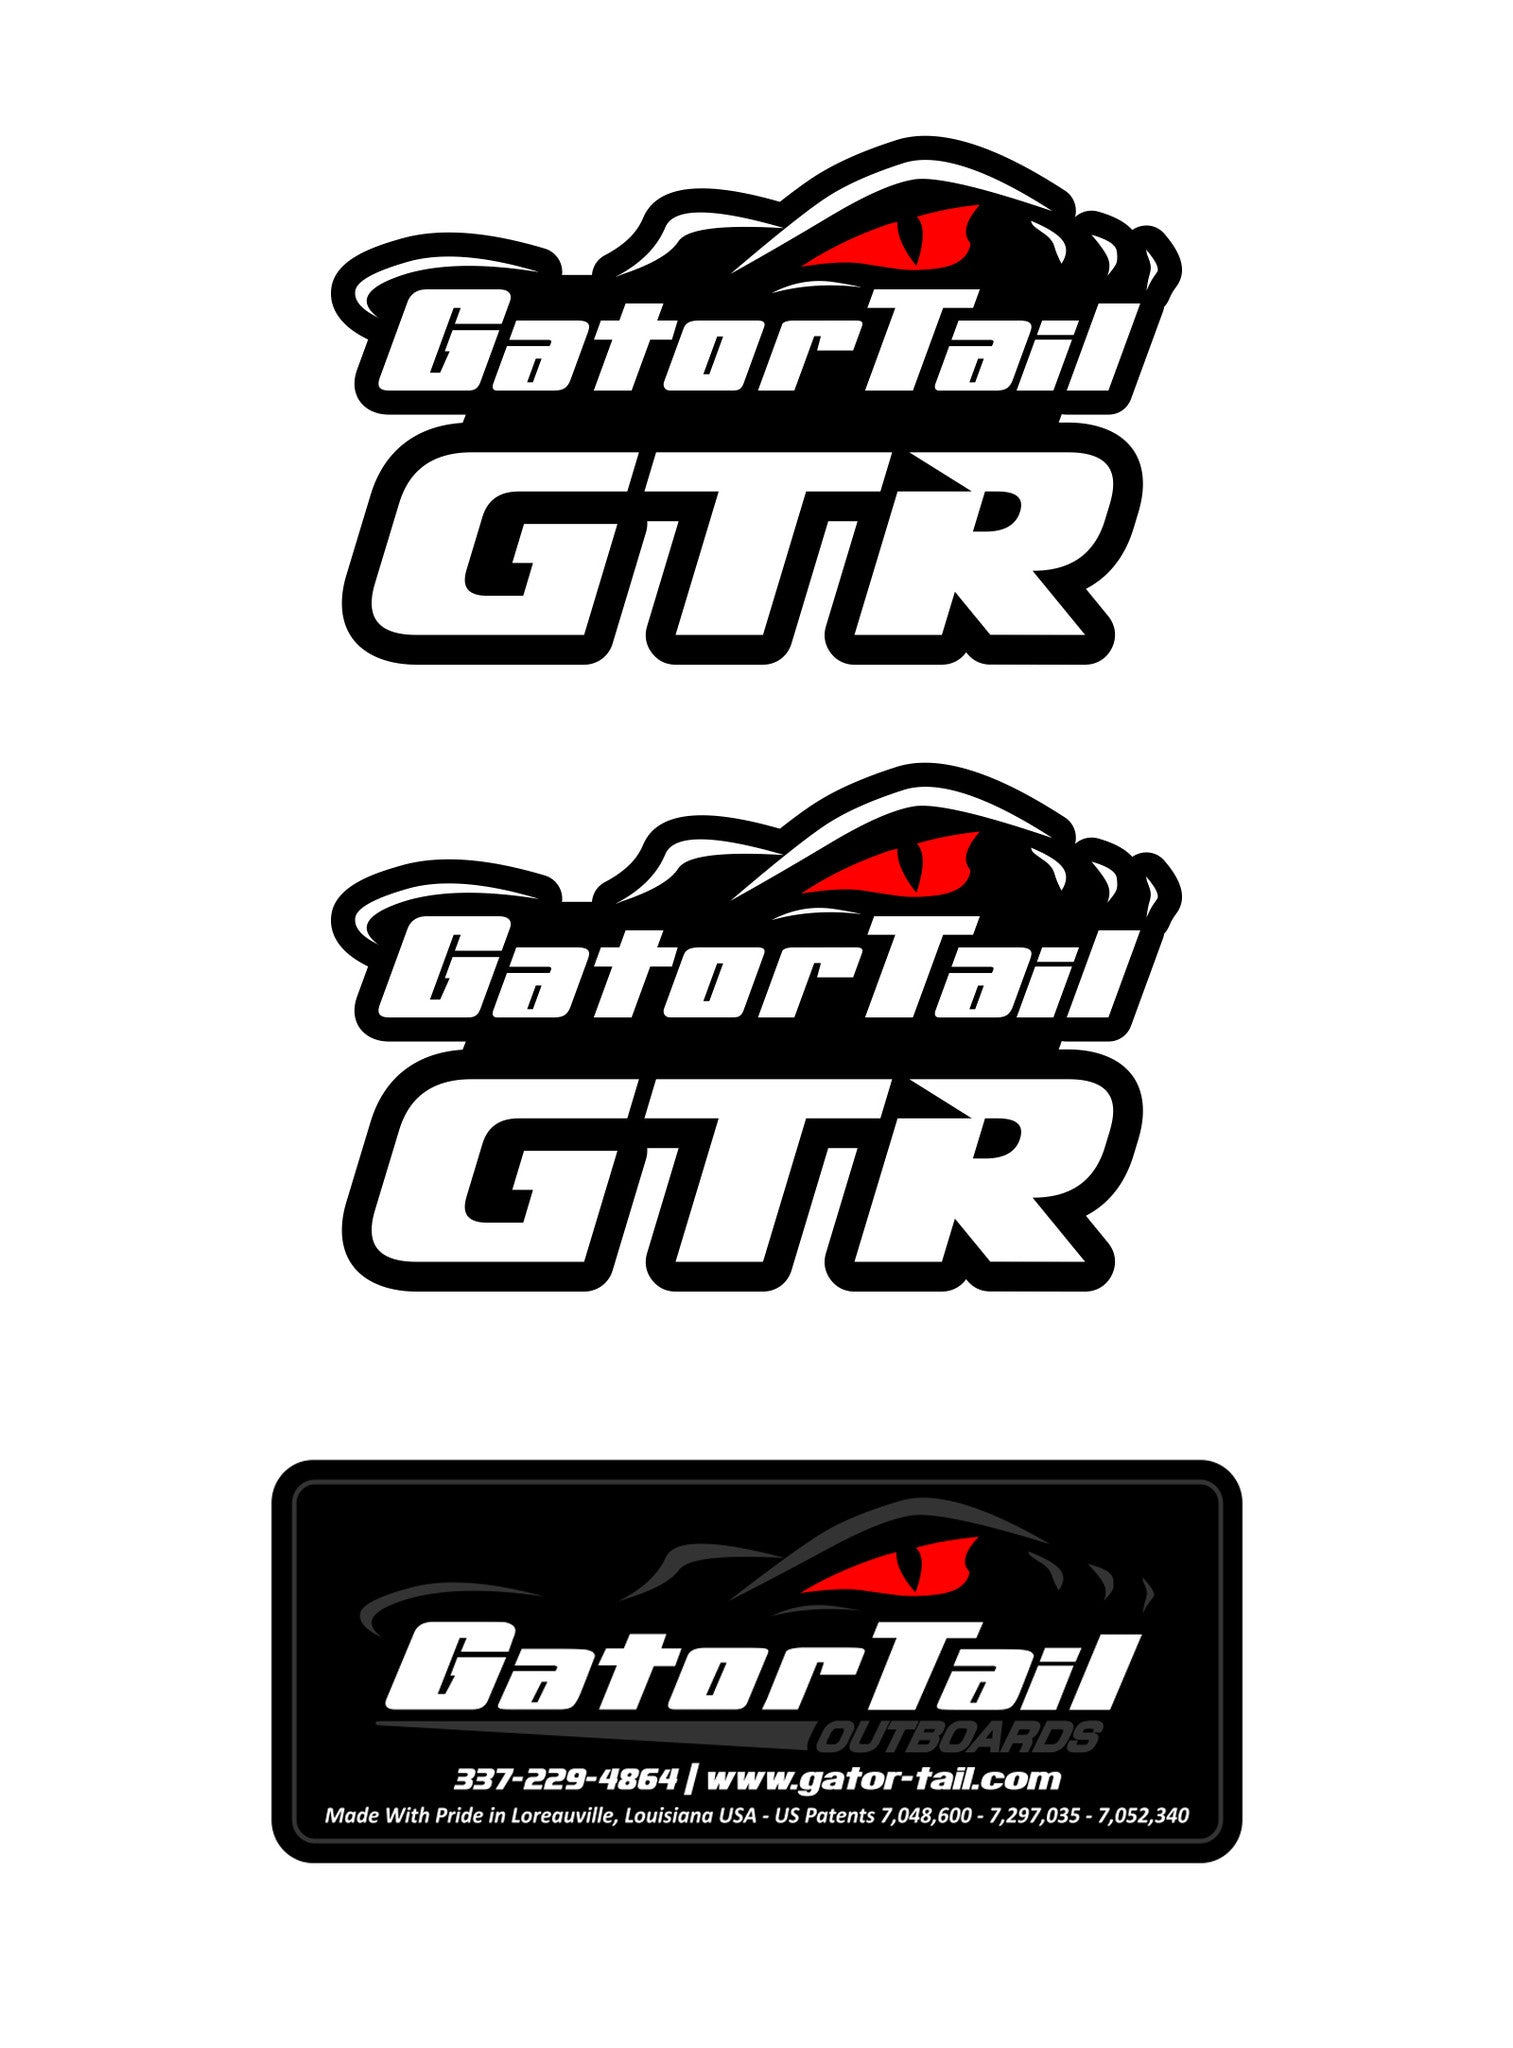 2 GTR Decals (1 Patent Decal included)